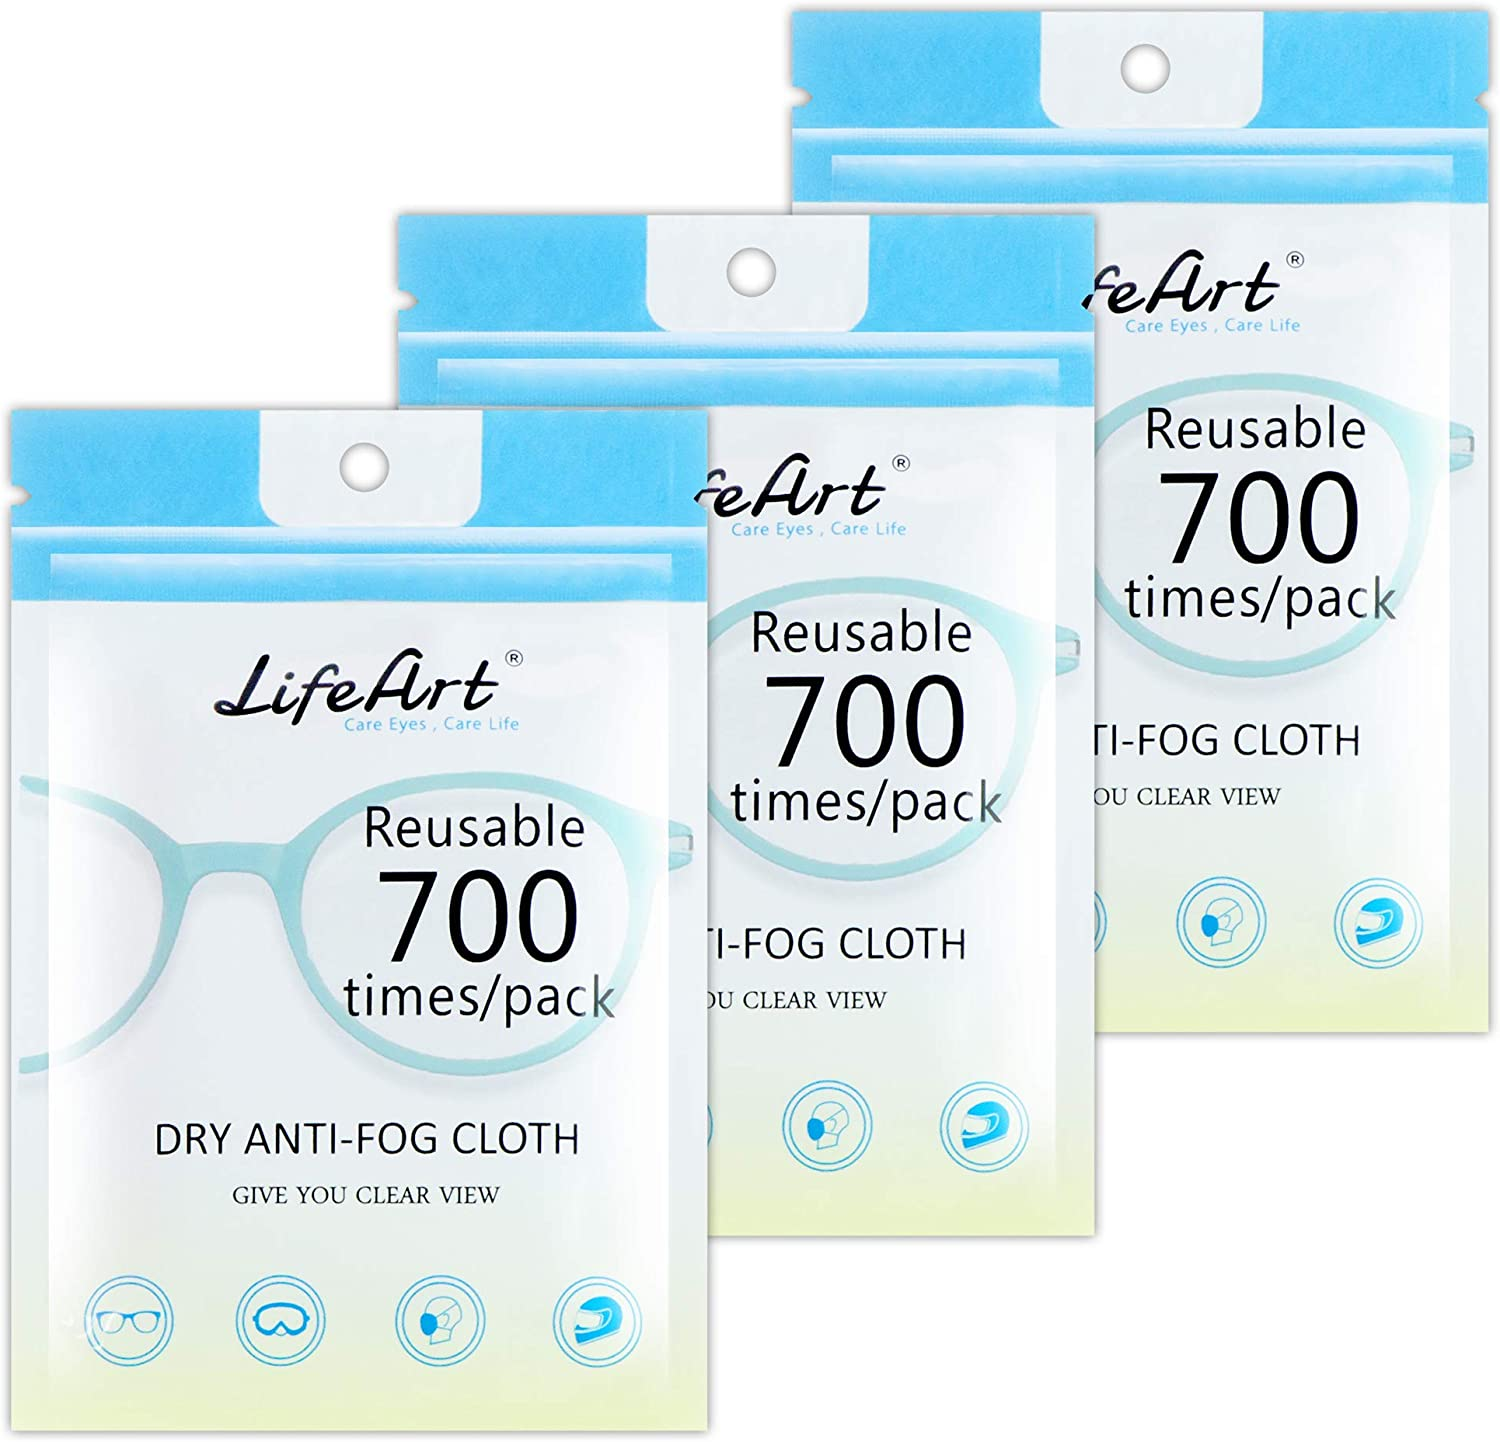 LifeArt Anti Fog Cloth Cleaning Rapid rise Eyeglasses 25% OFF Microfiber for